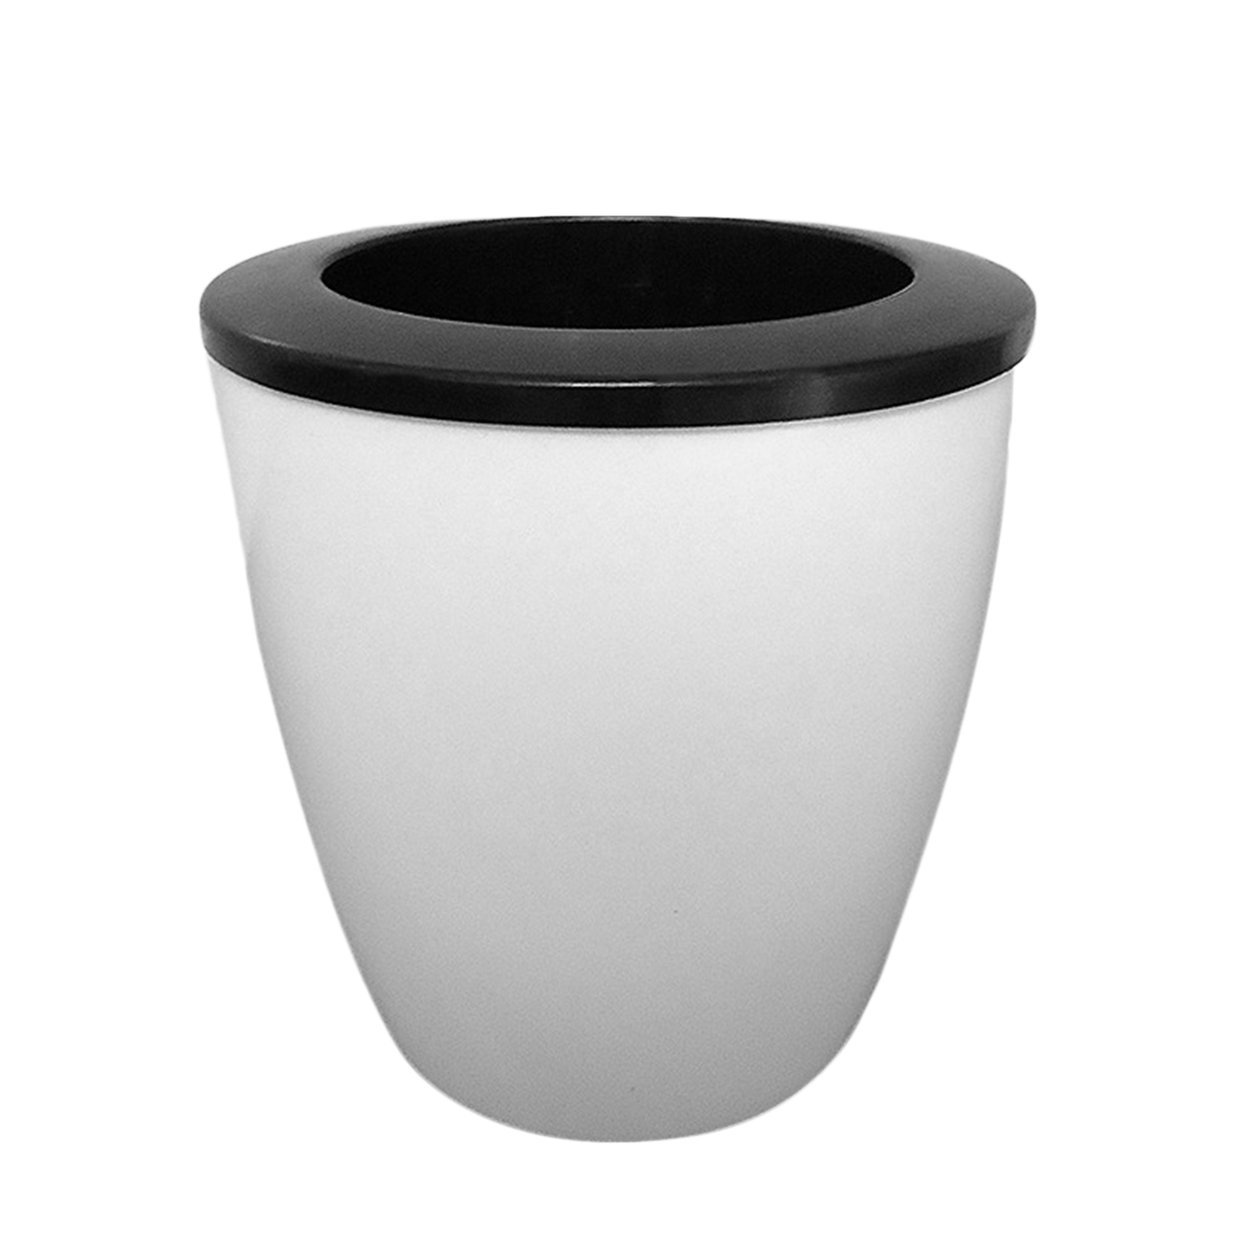 PassionSell Automatic Indoor Self-Watering Flower Pot Put In Soil ...